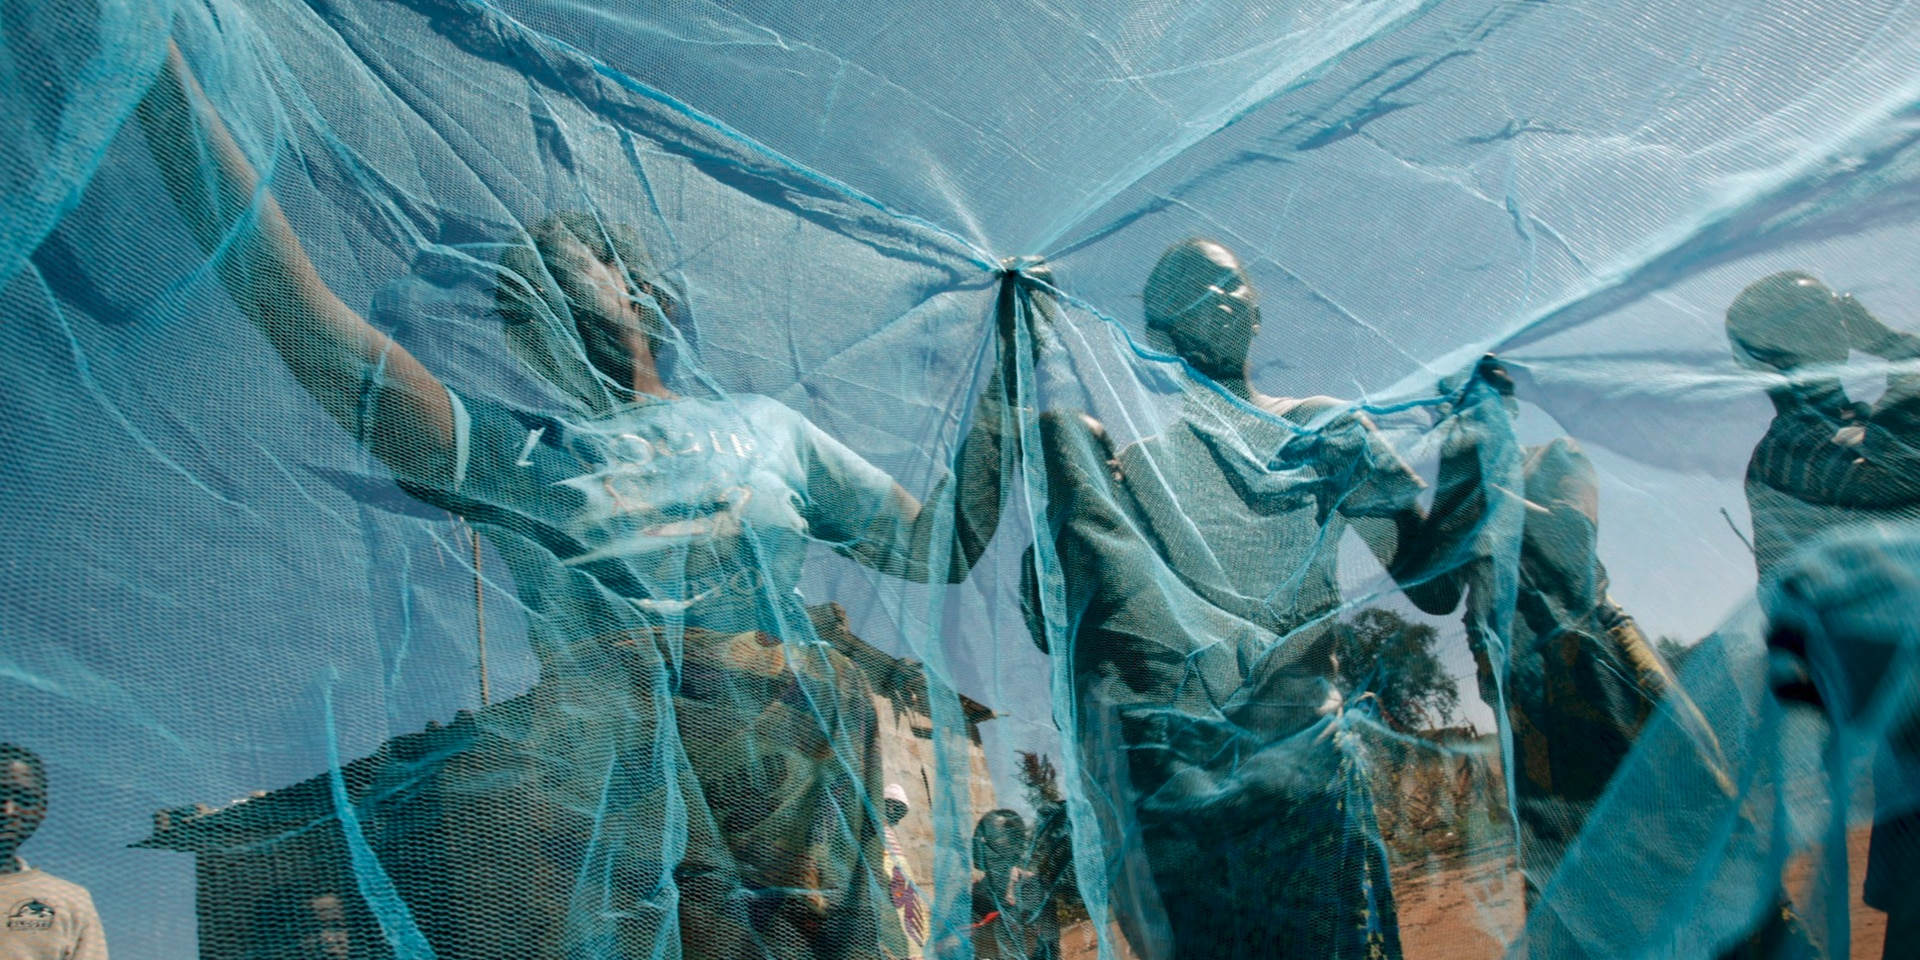 Some children hold up a large blue mosquito net.